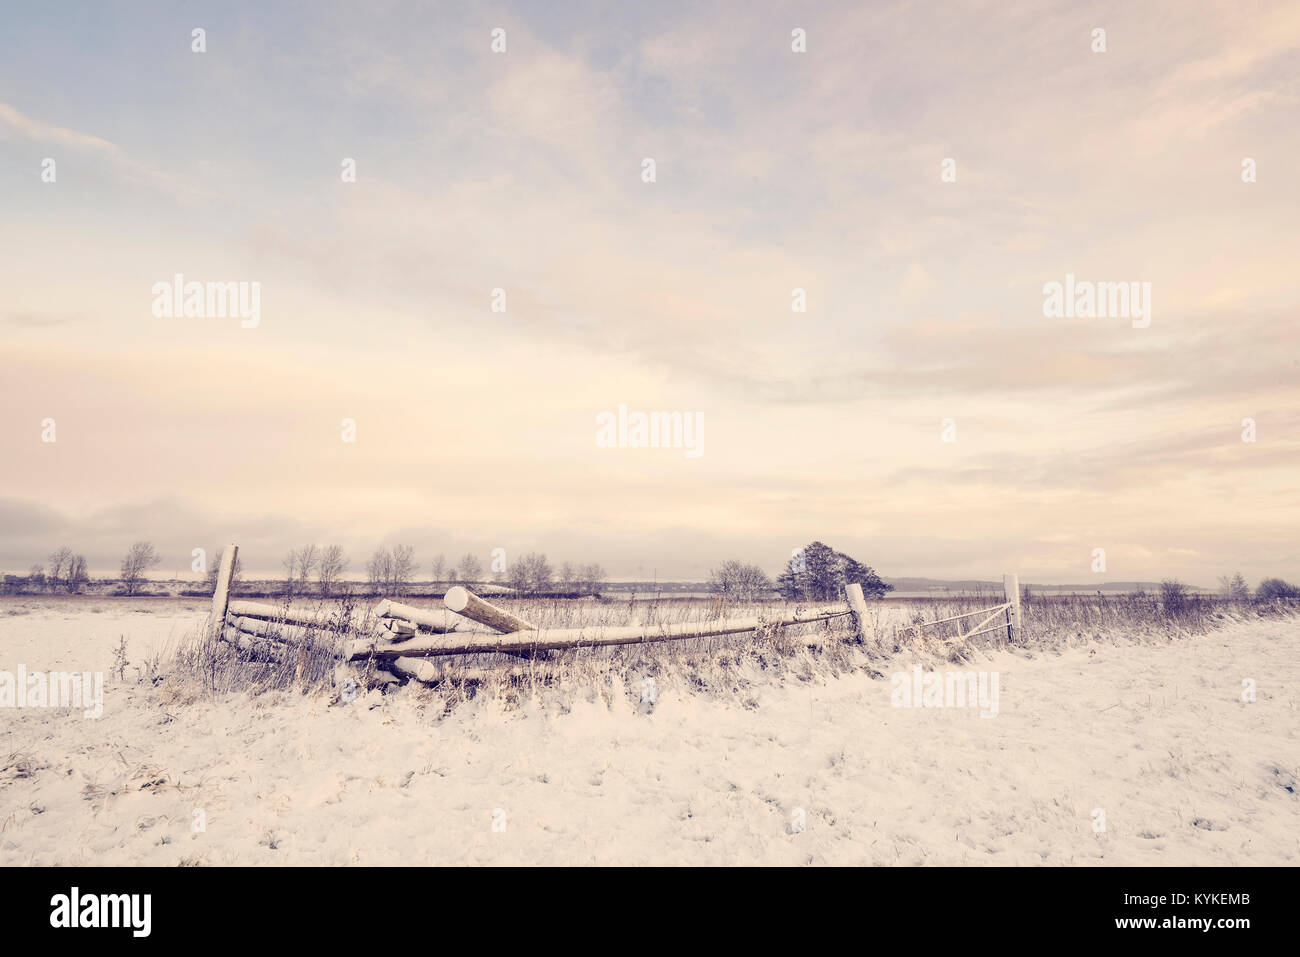 Winter scenery with a wooden fence covered in snow on a rural field in the morning sunrise - Stock Image